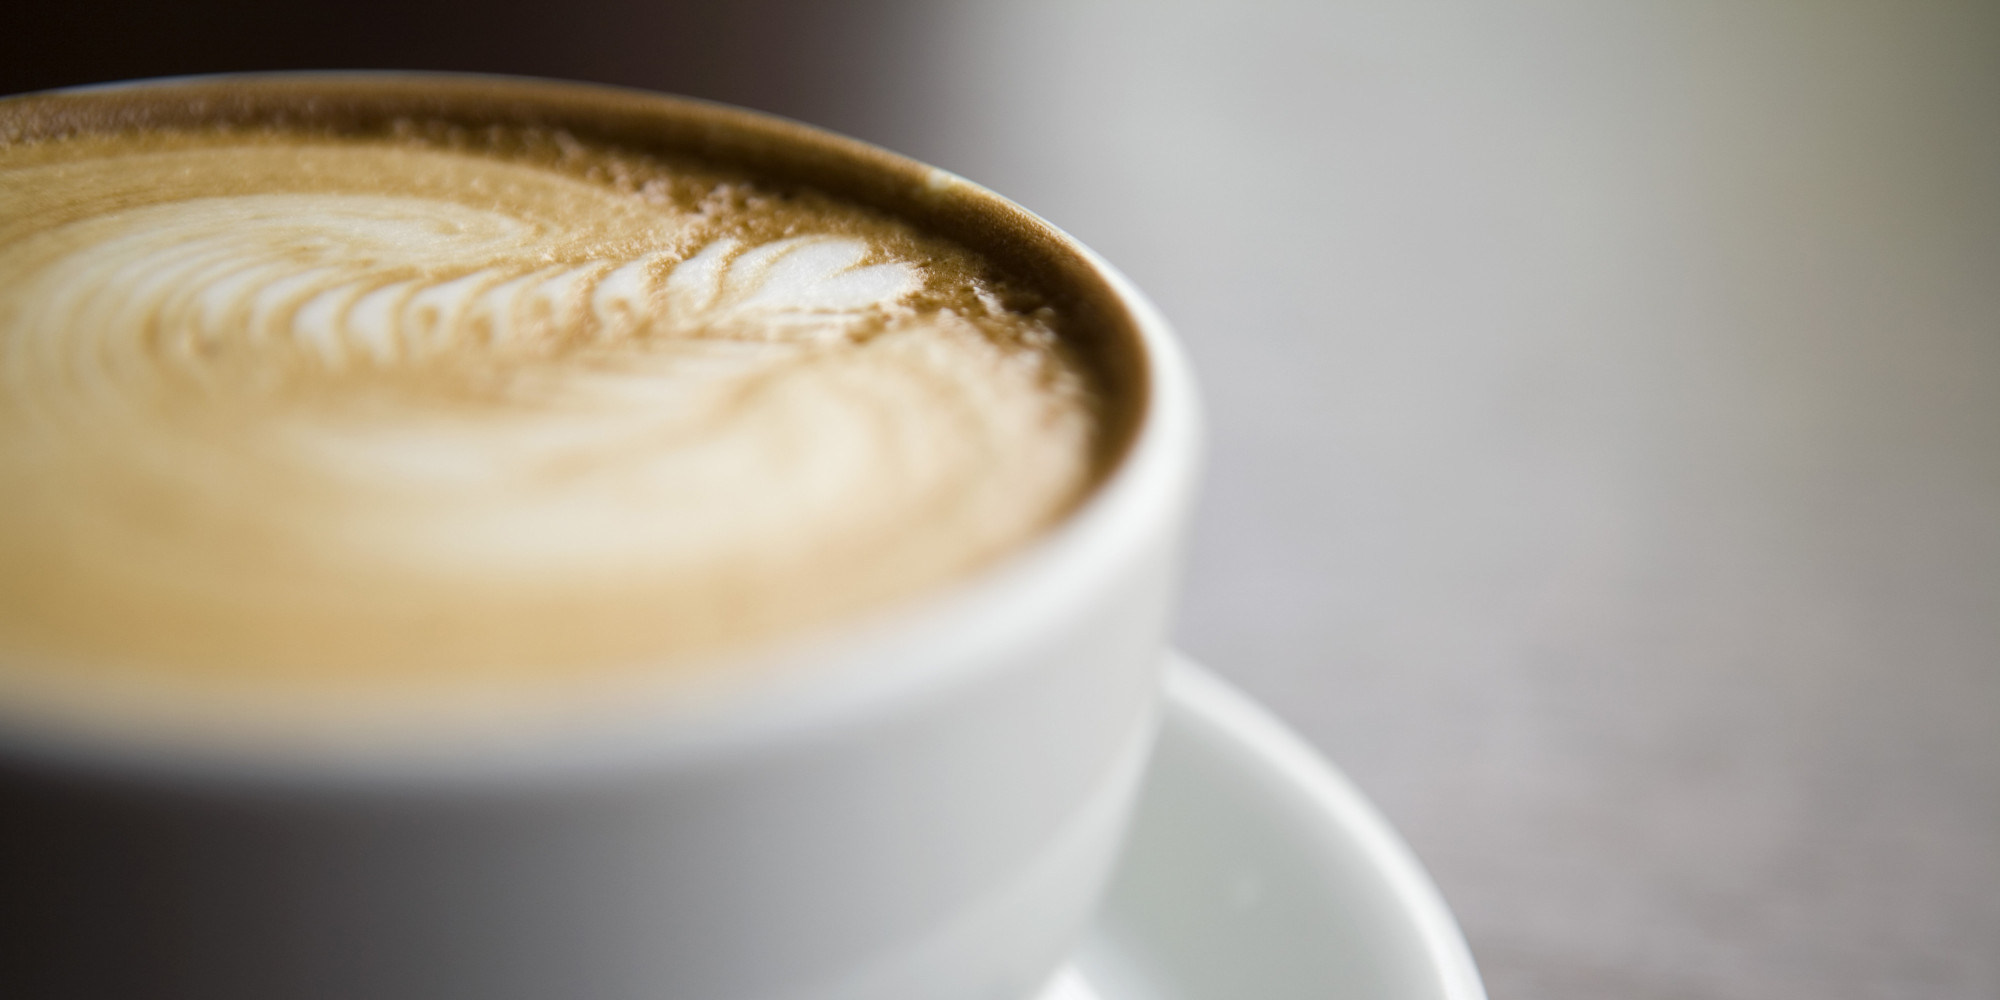 Americans Drink How Much Coffee A Day